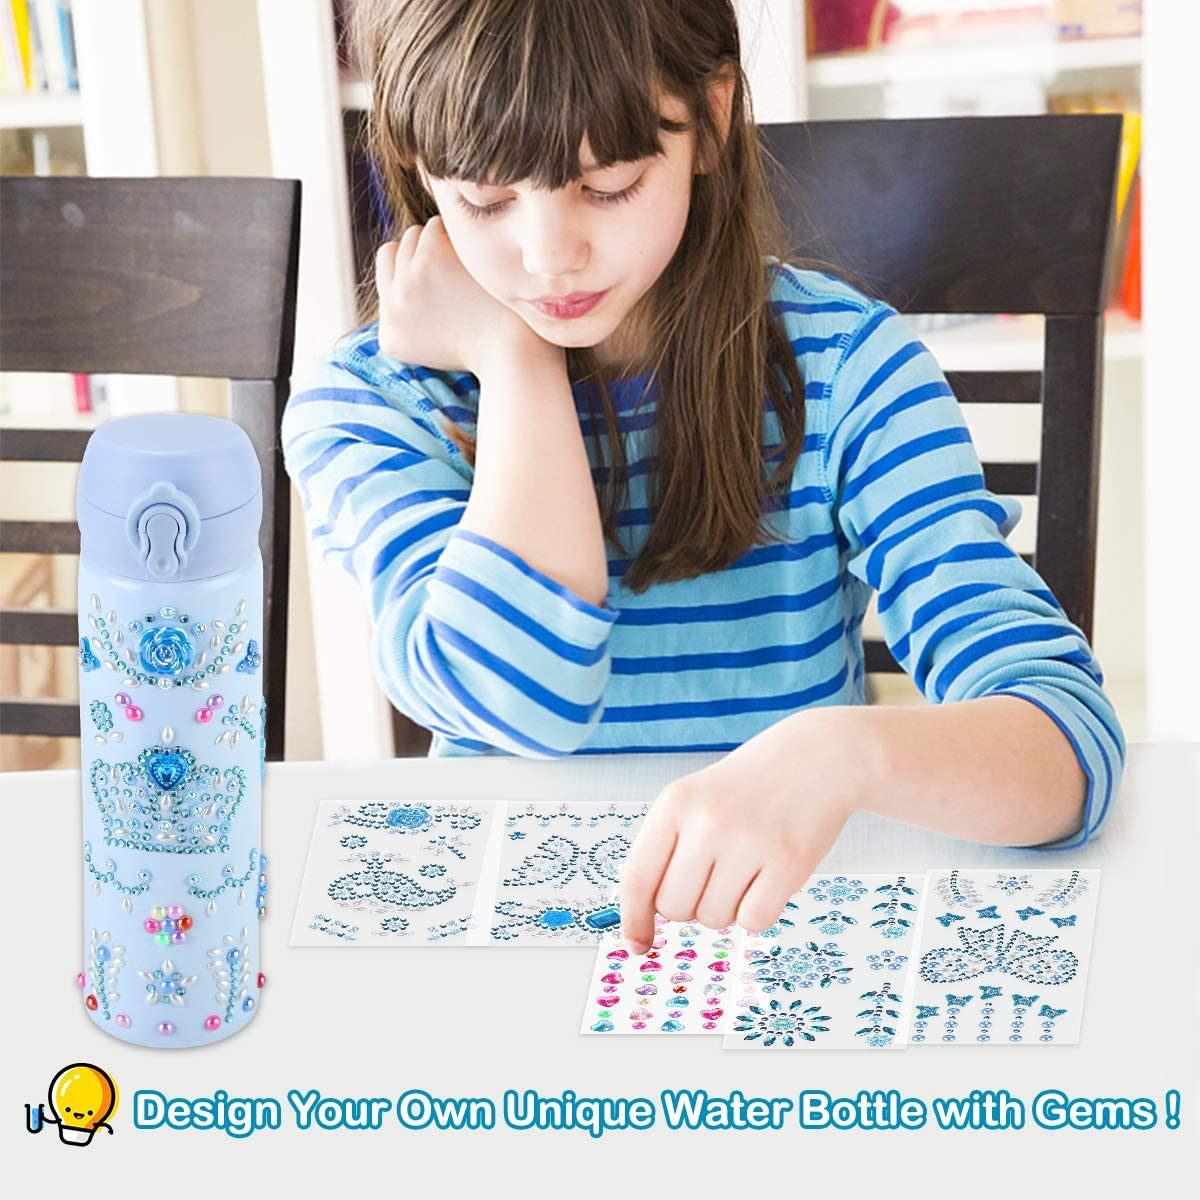 17 OZ BPA Free Stainless Steel Vacuum Insulated Kids Water Bottles Pakoo Decorate Your Own Water Bottle for Girls with Tons of Rhinestone Gem Stickers Fun DIY Art Set /& Craft Kit Gift for Girls